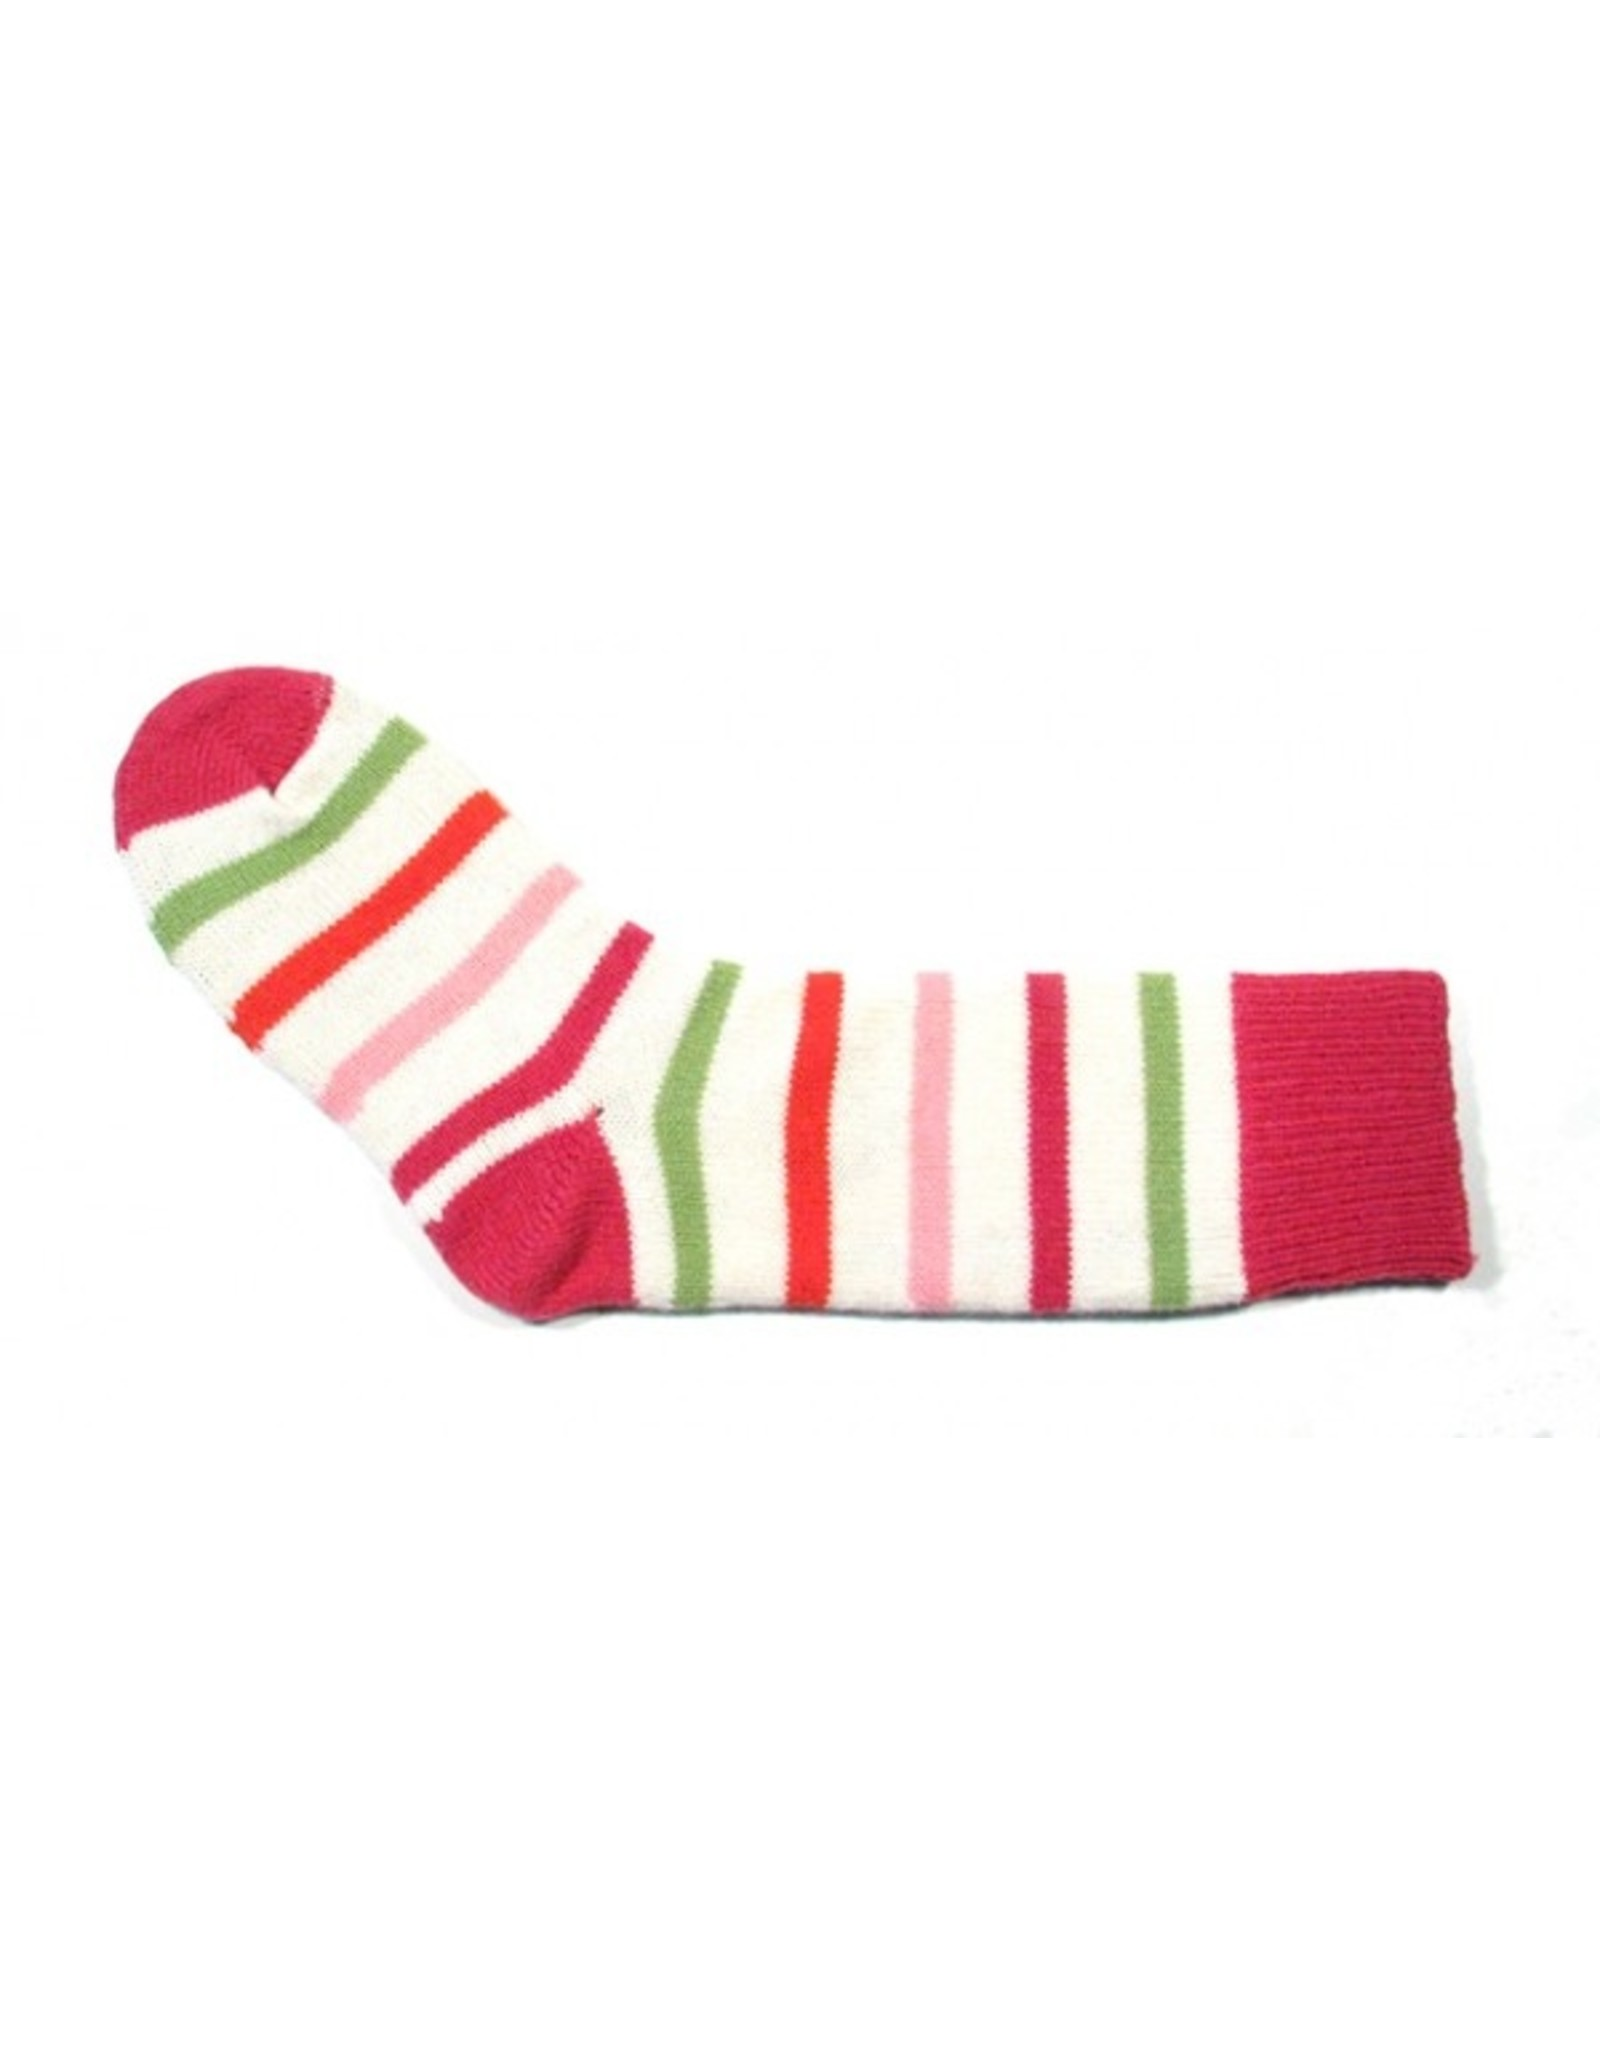 Bas de laine & mot coquin - Socks The Artist (White/Pink, Red and Green)